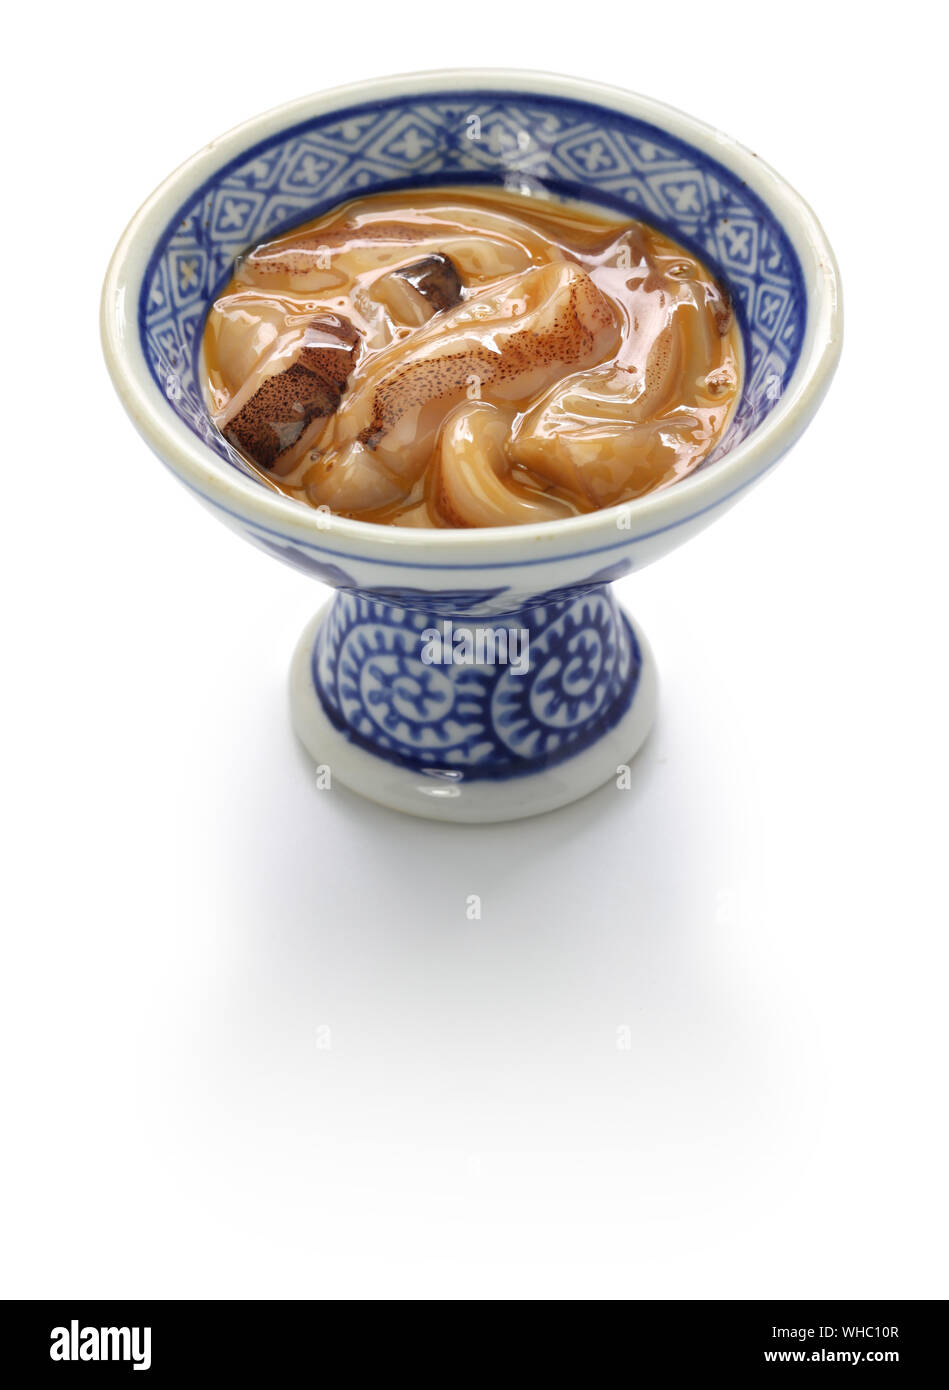 homemade ika no shiokara, salted fermented squid meat and liver, Japanese food Stock Photo